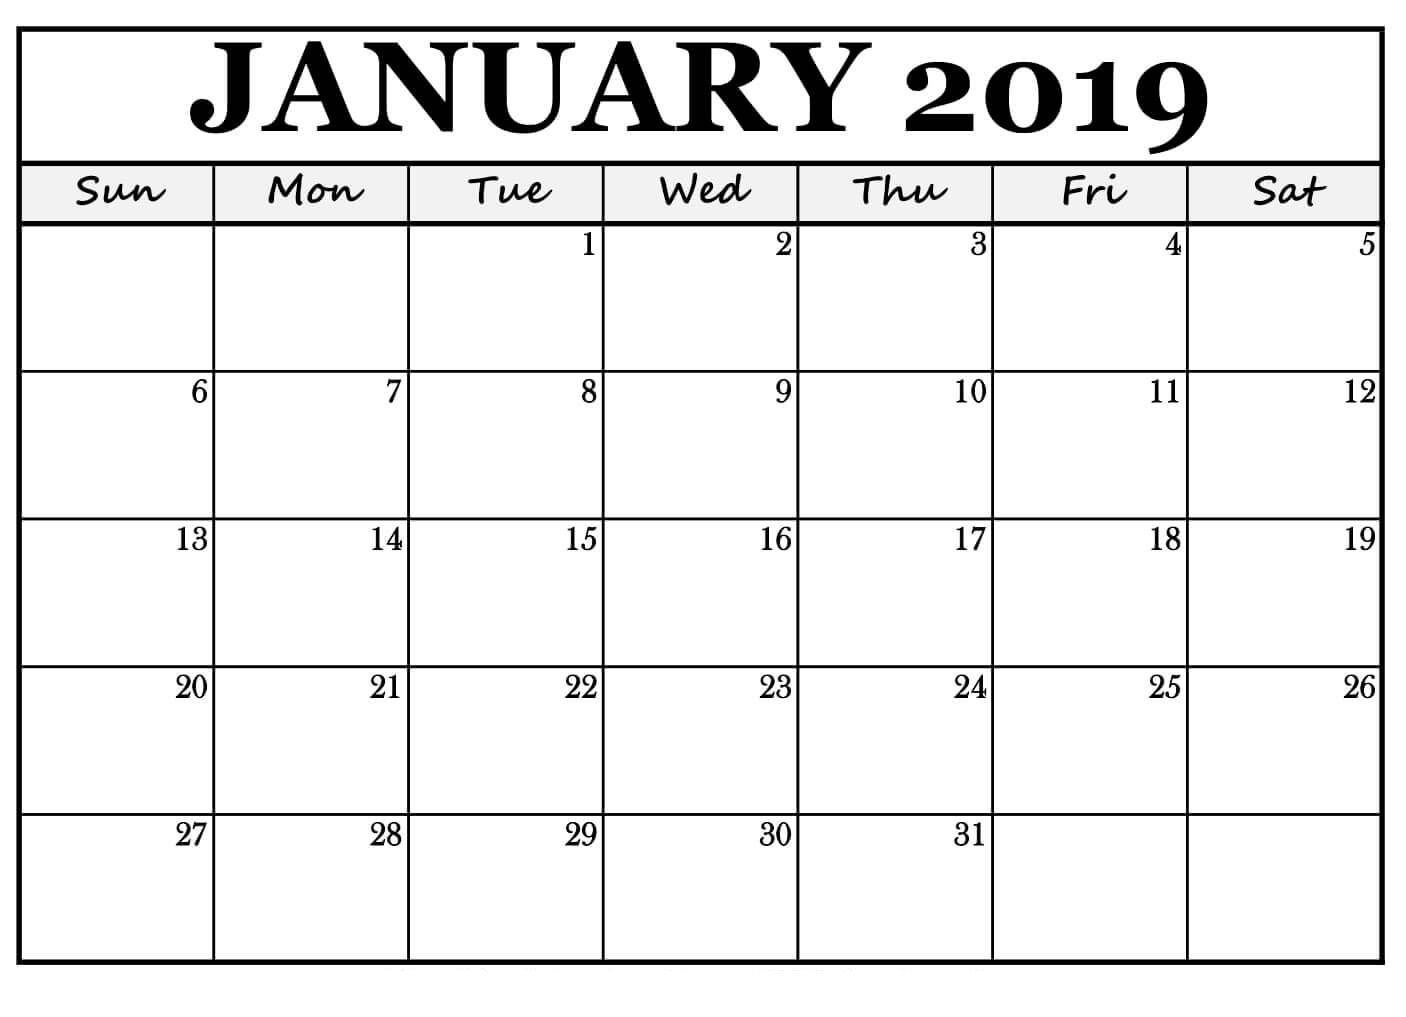 Blank Monthly Calendar Template Pdf January 2019 Calendar for Landscape Free Print